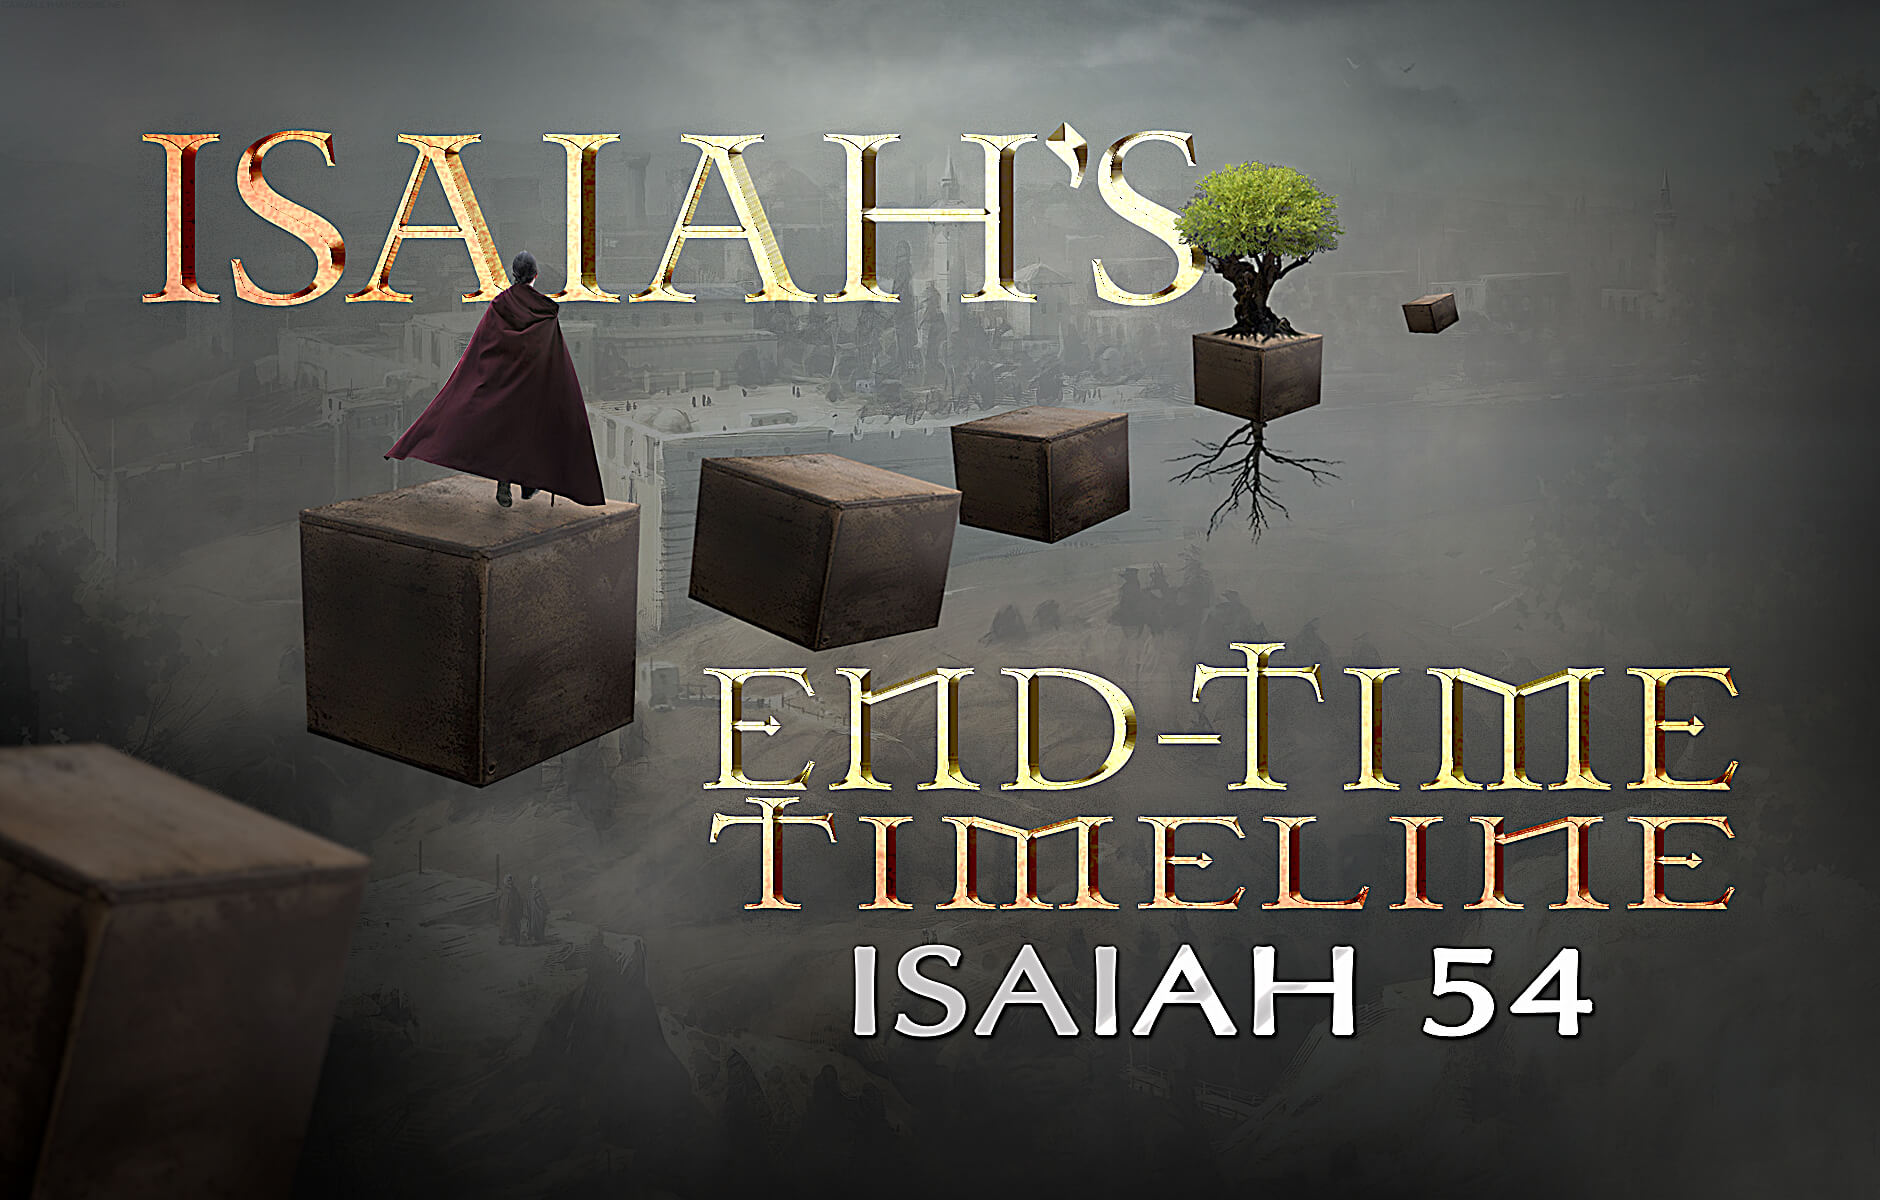 Isaiah's End-time Timeline Chapter 54